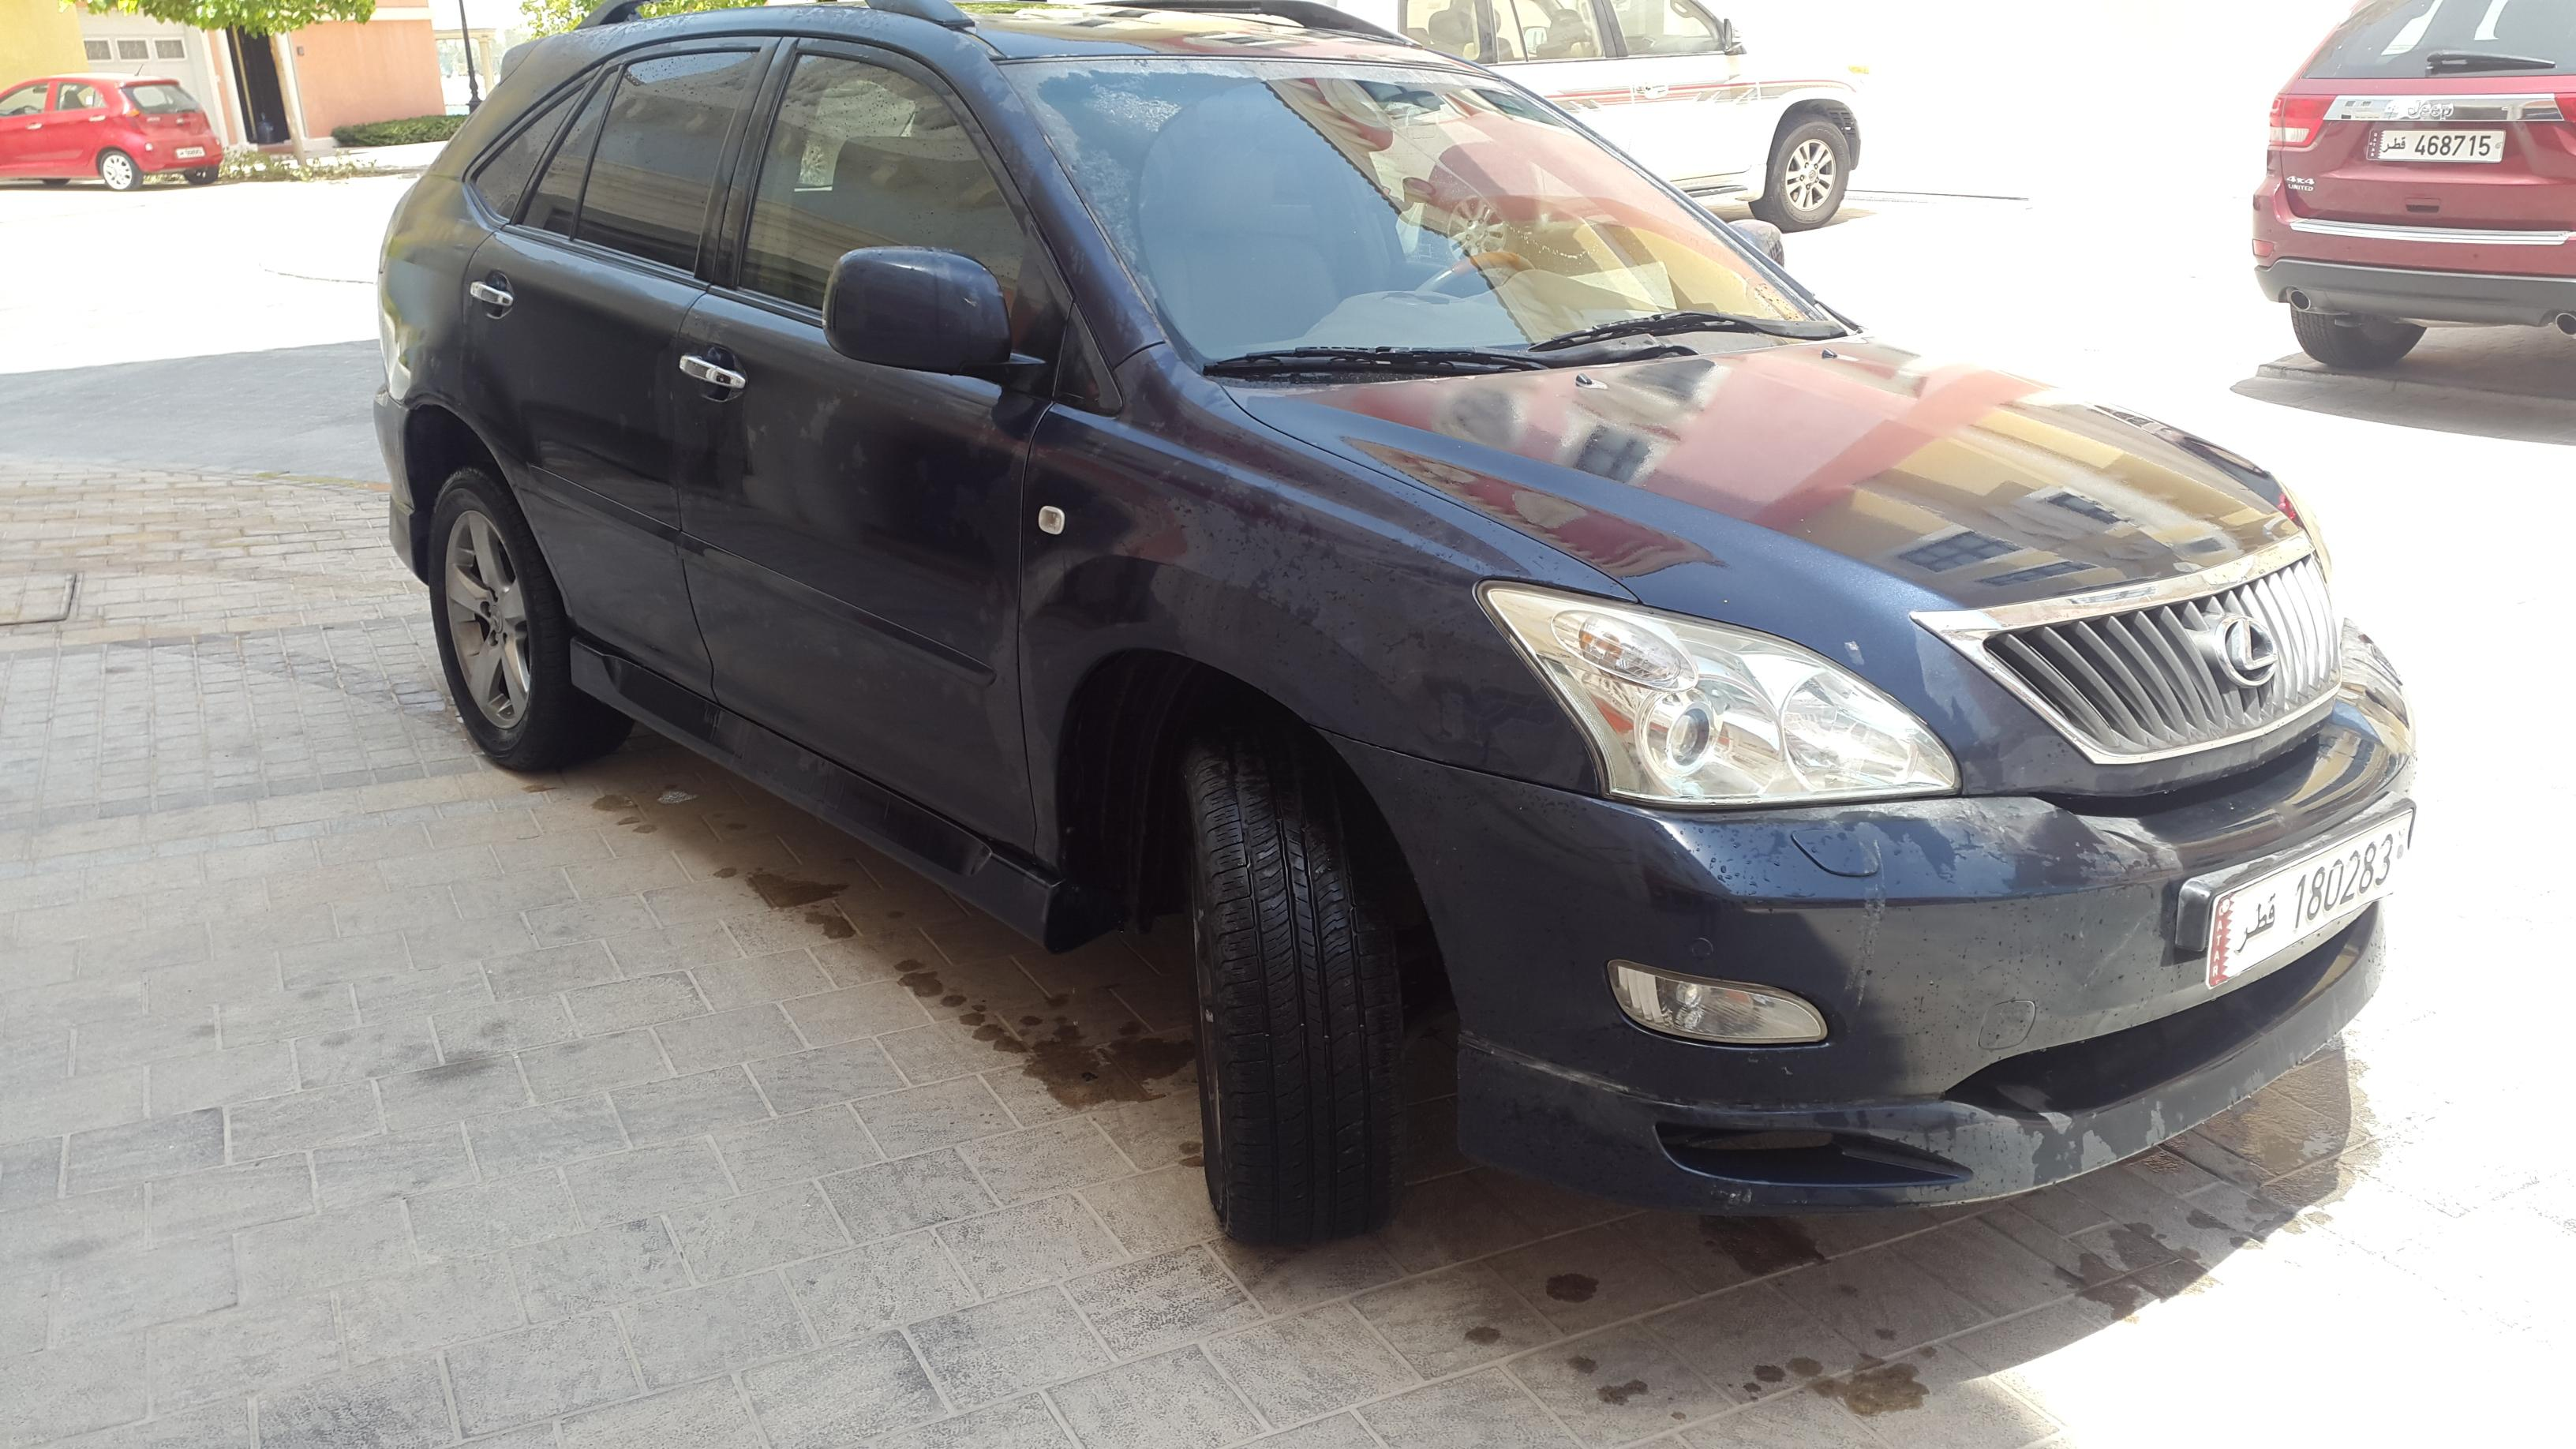 LEXUS RX350 VERY GOOD 117000 KM